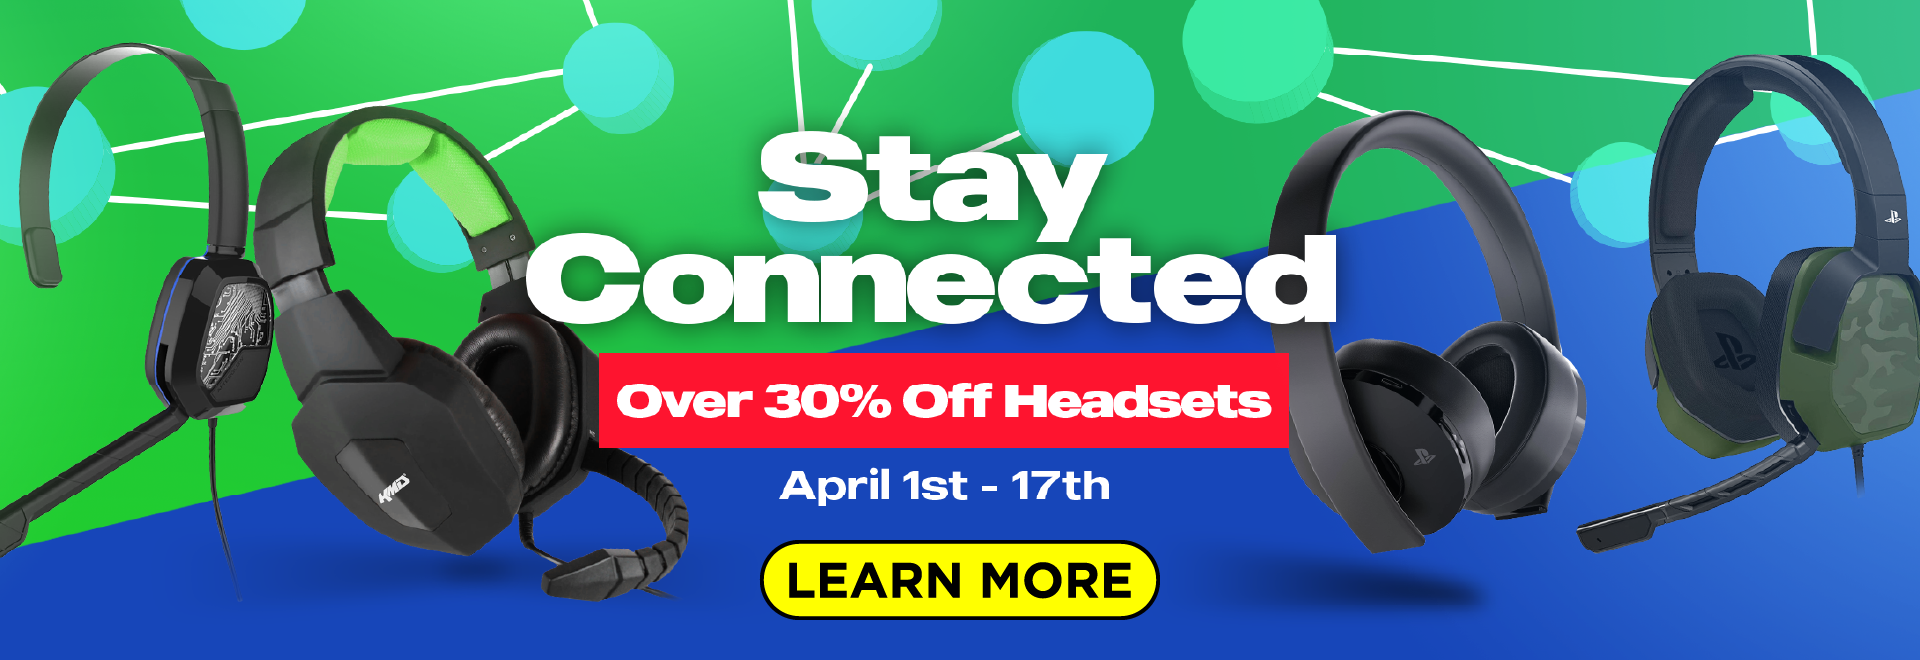 Stay Connected with Headsets